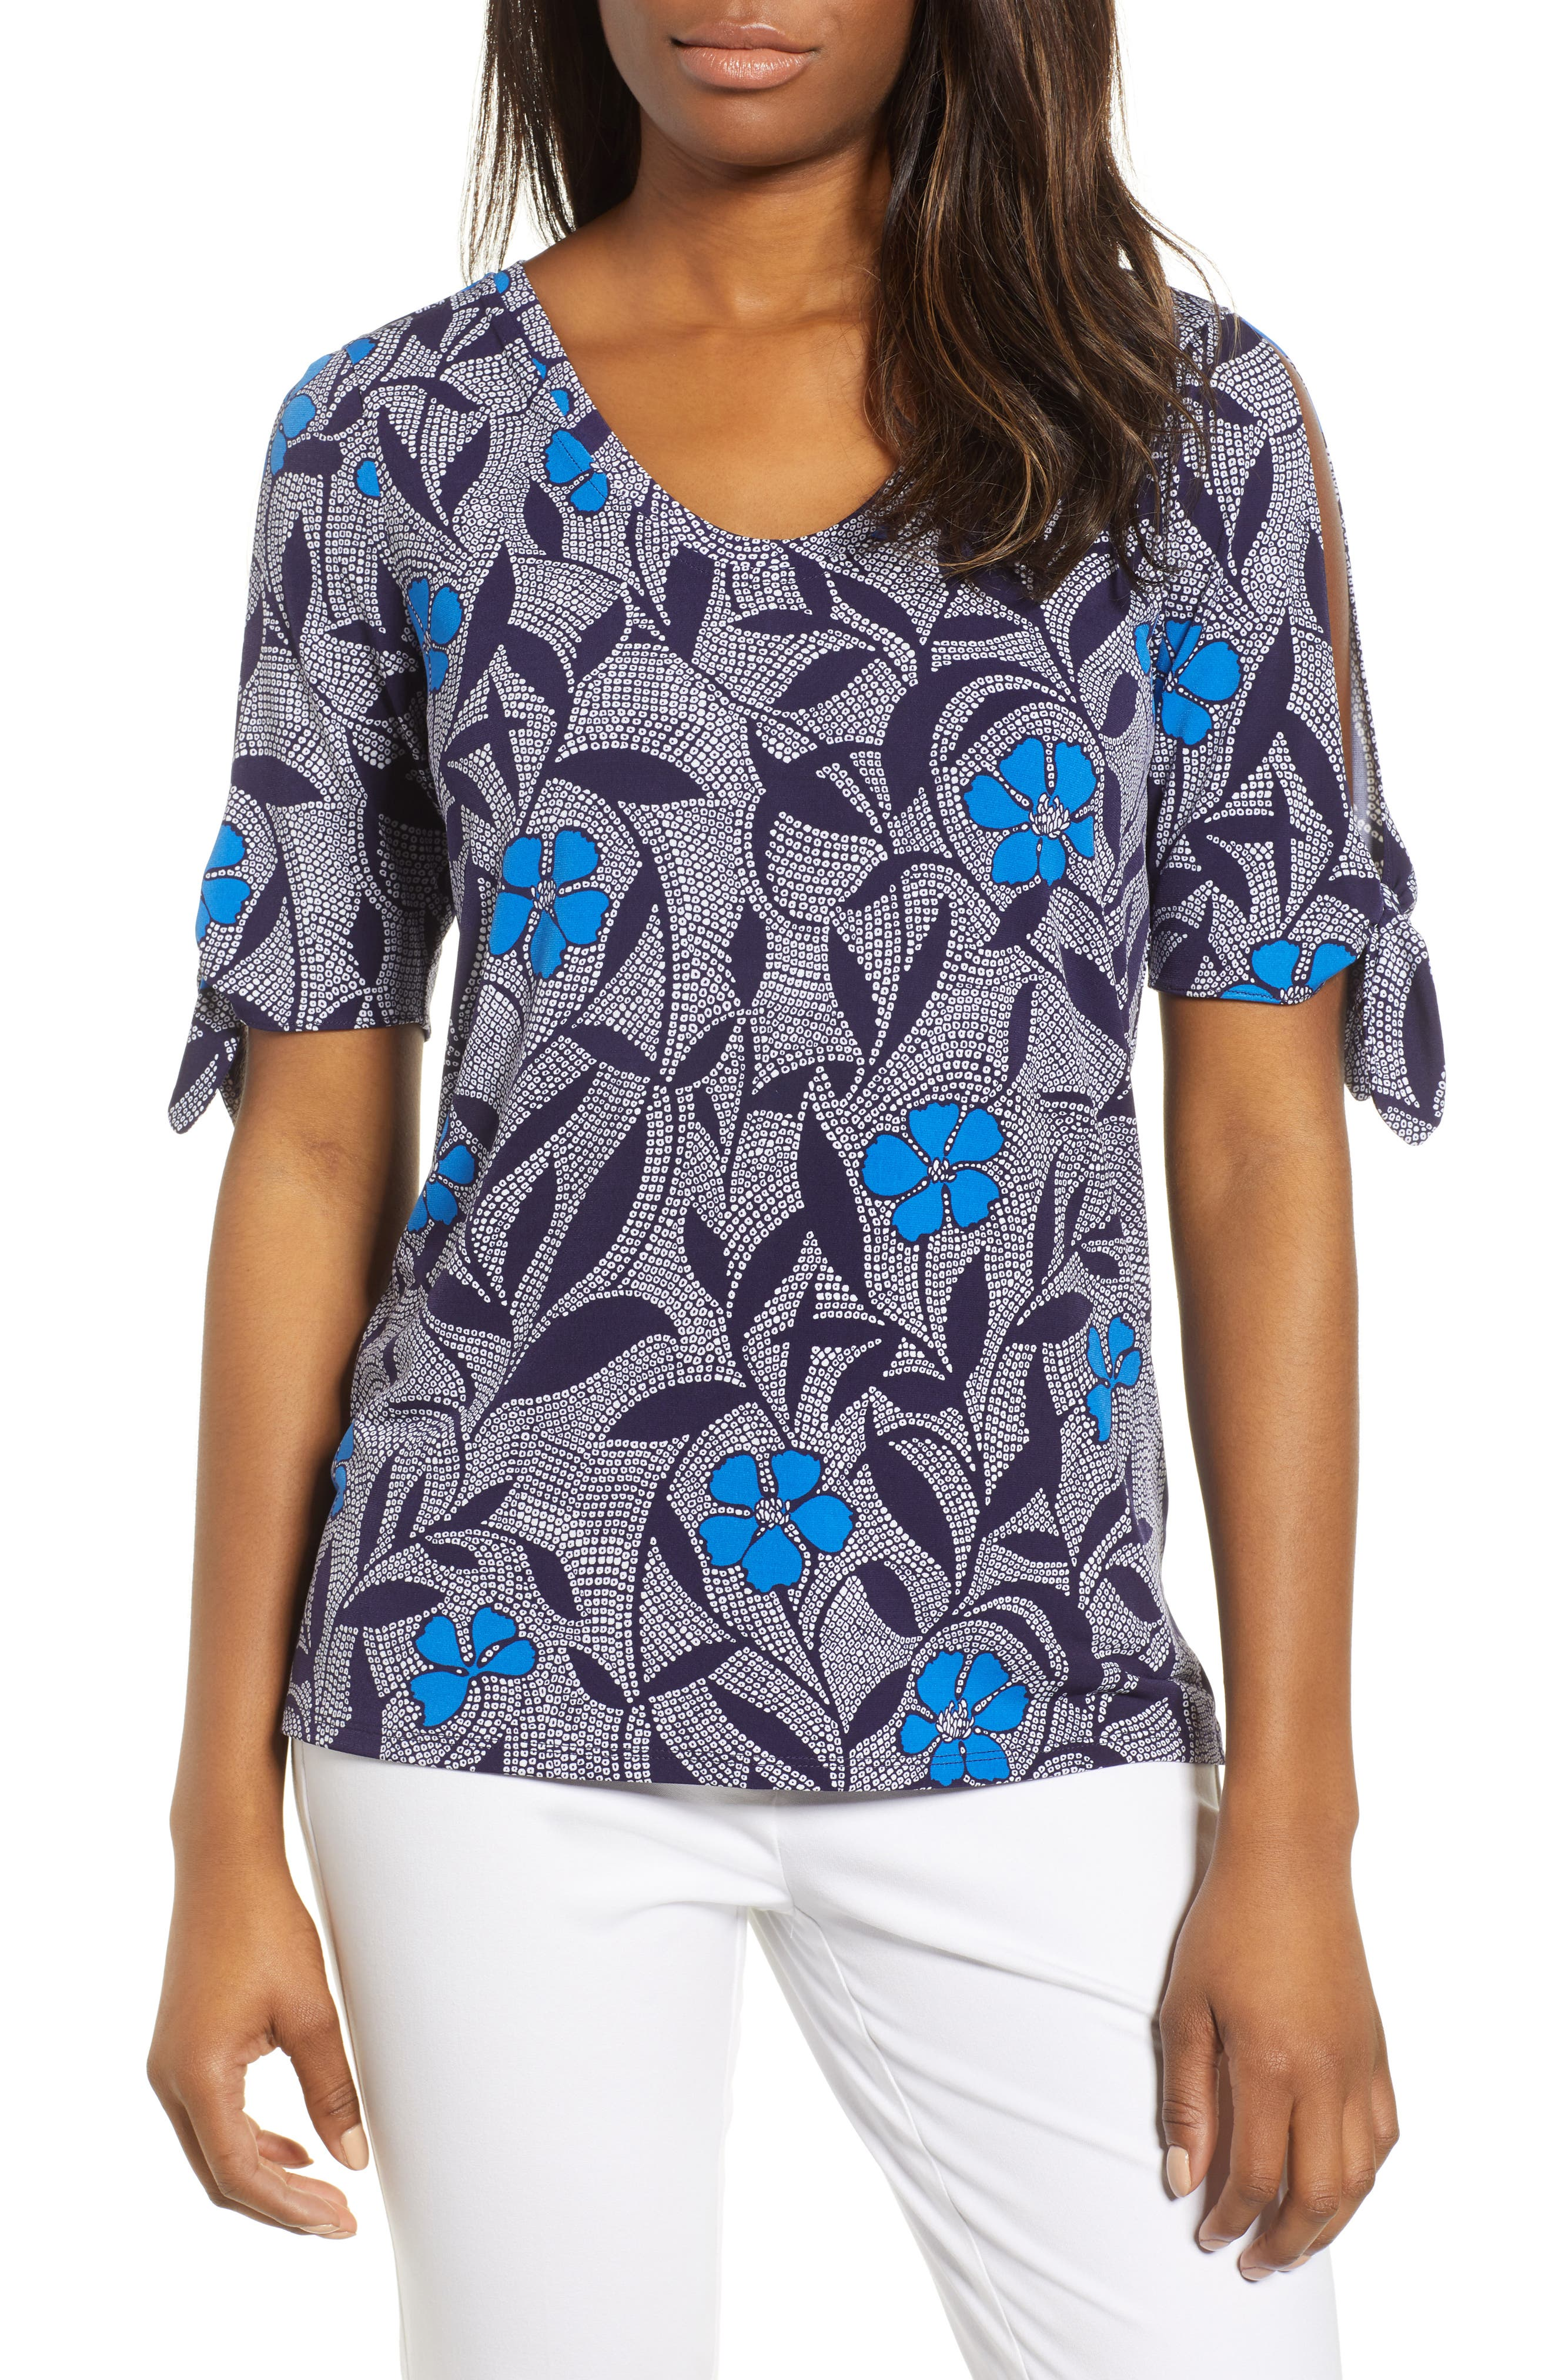 Pacific Bloom Top,                             Main thumbnail 1, color,                             Evening Navy